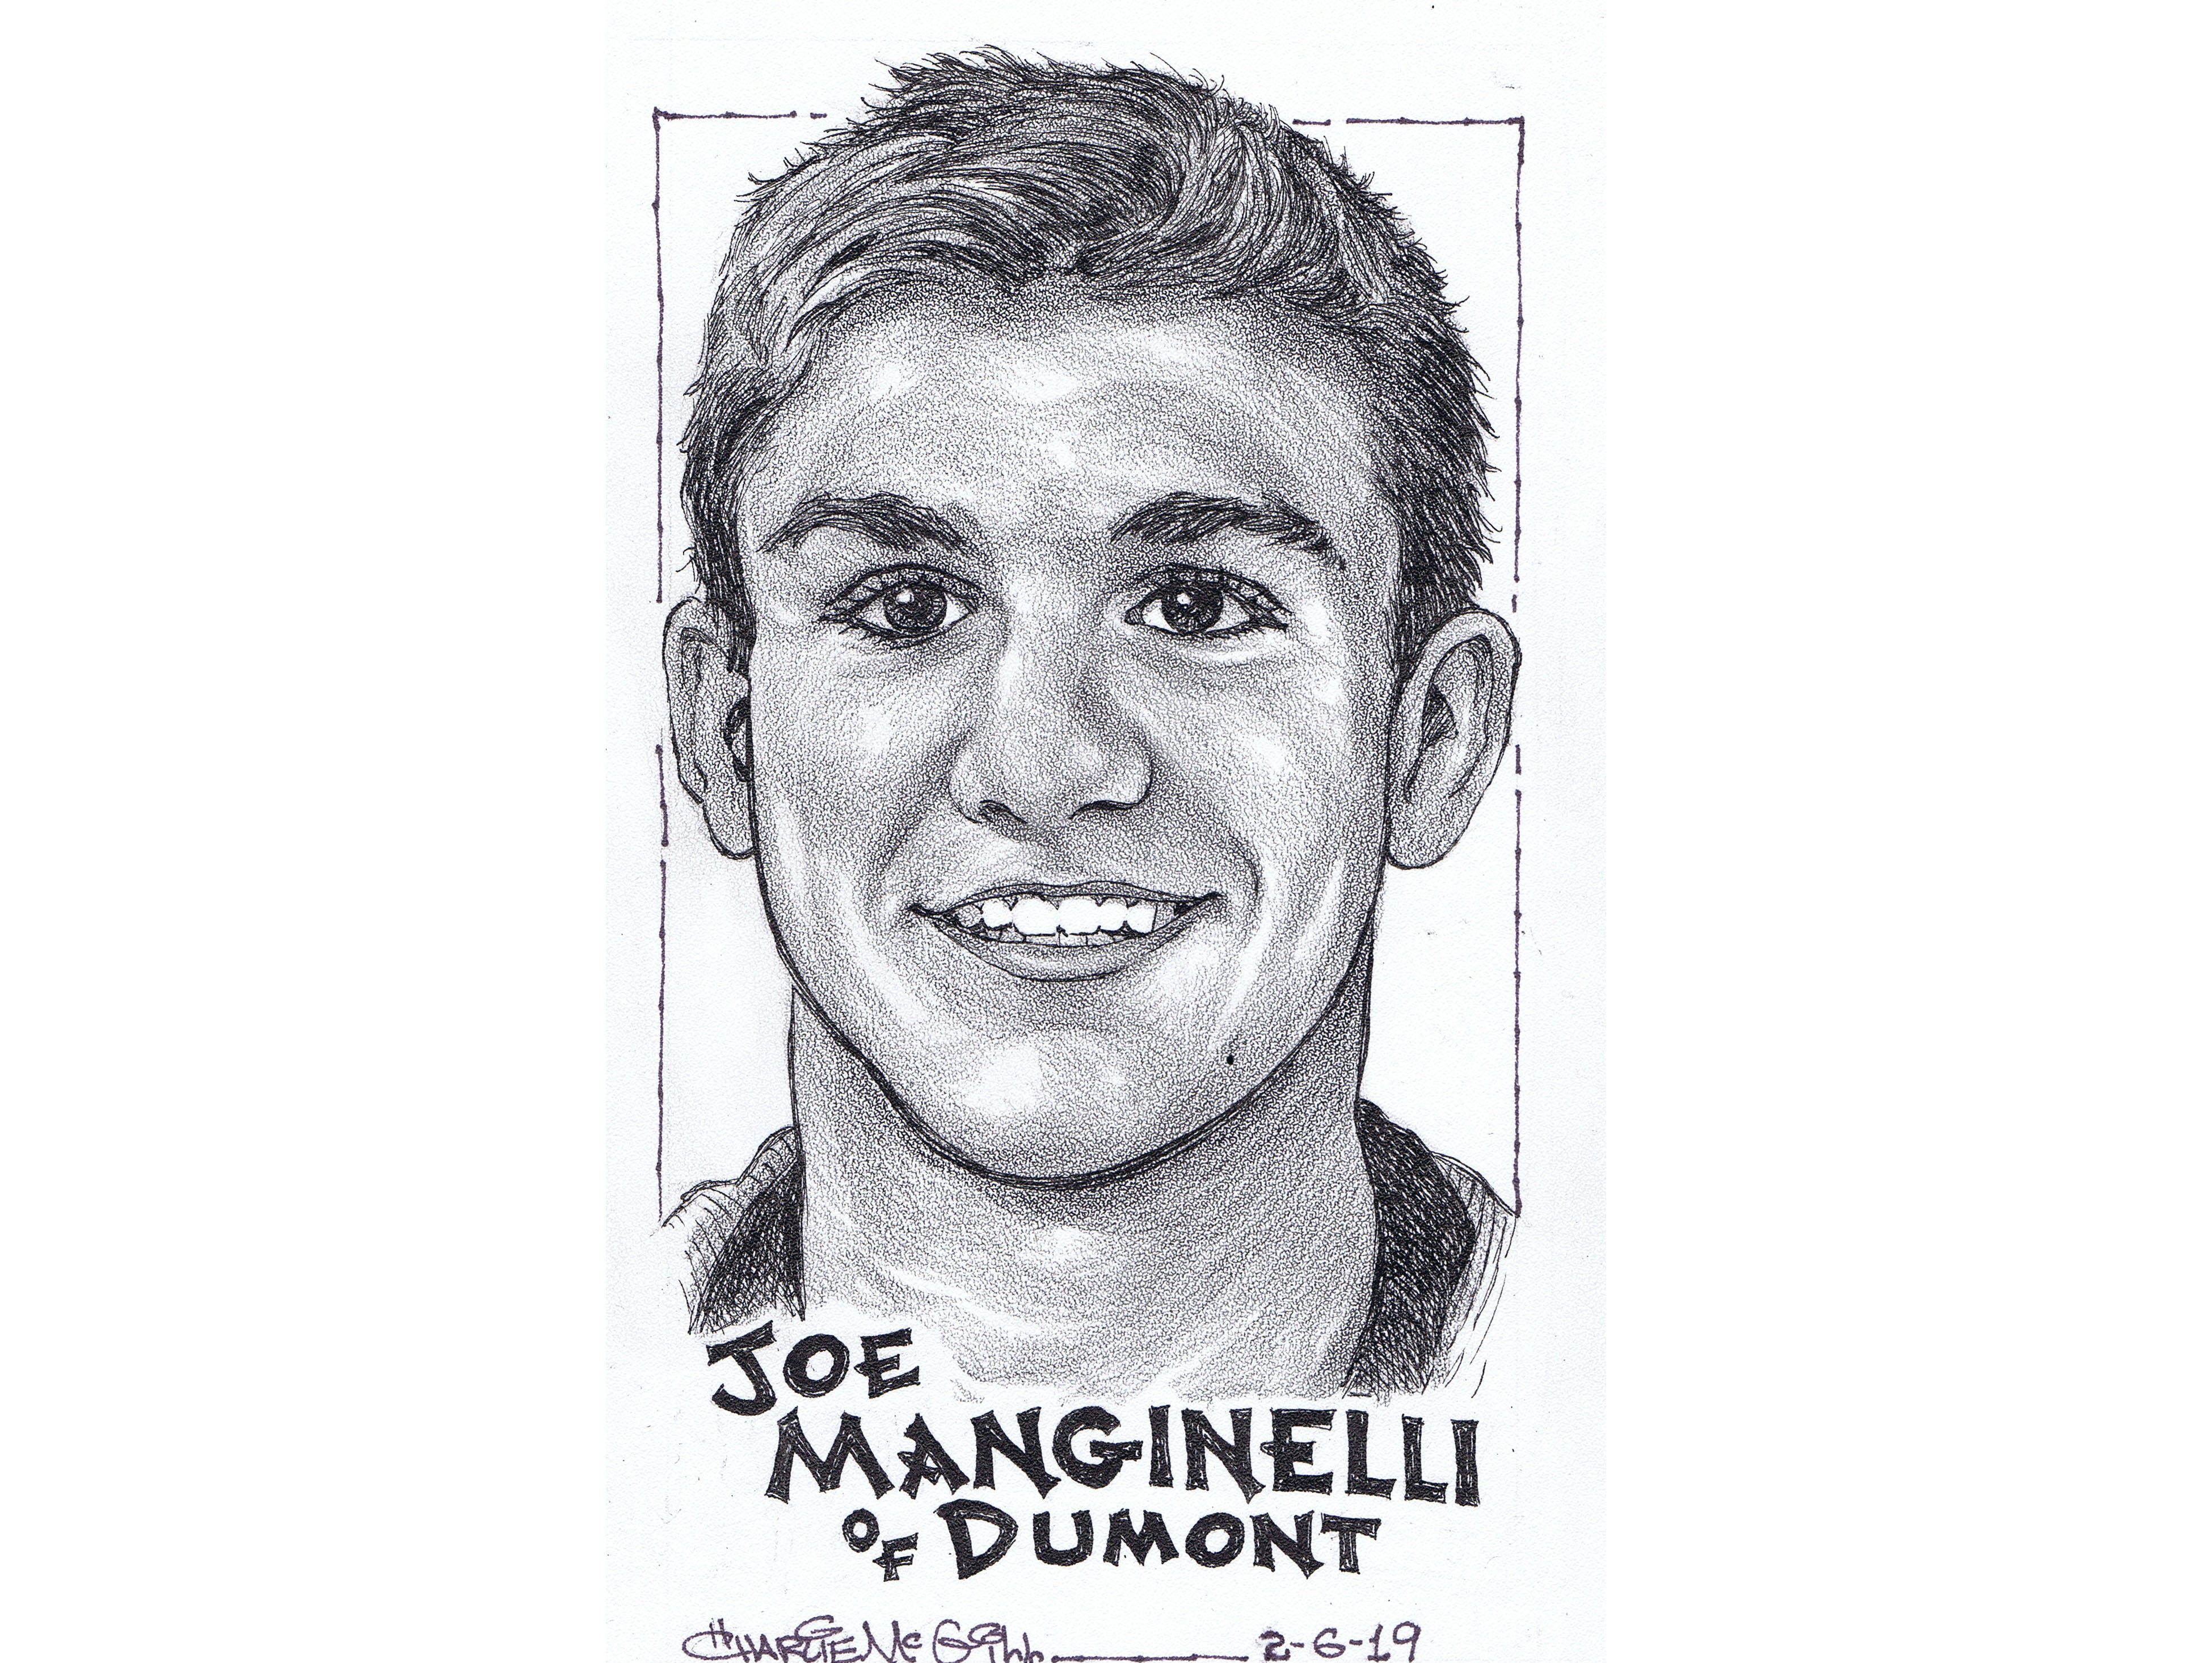 Joe Manginelli, Dumont wrestling